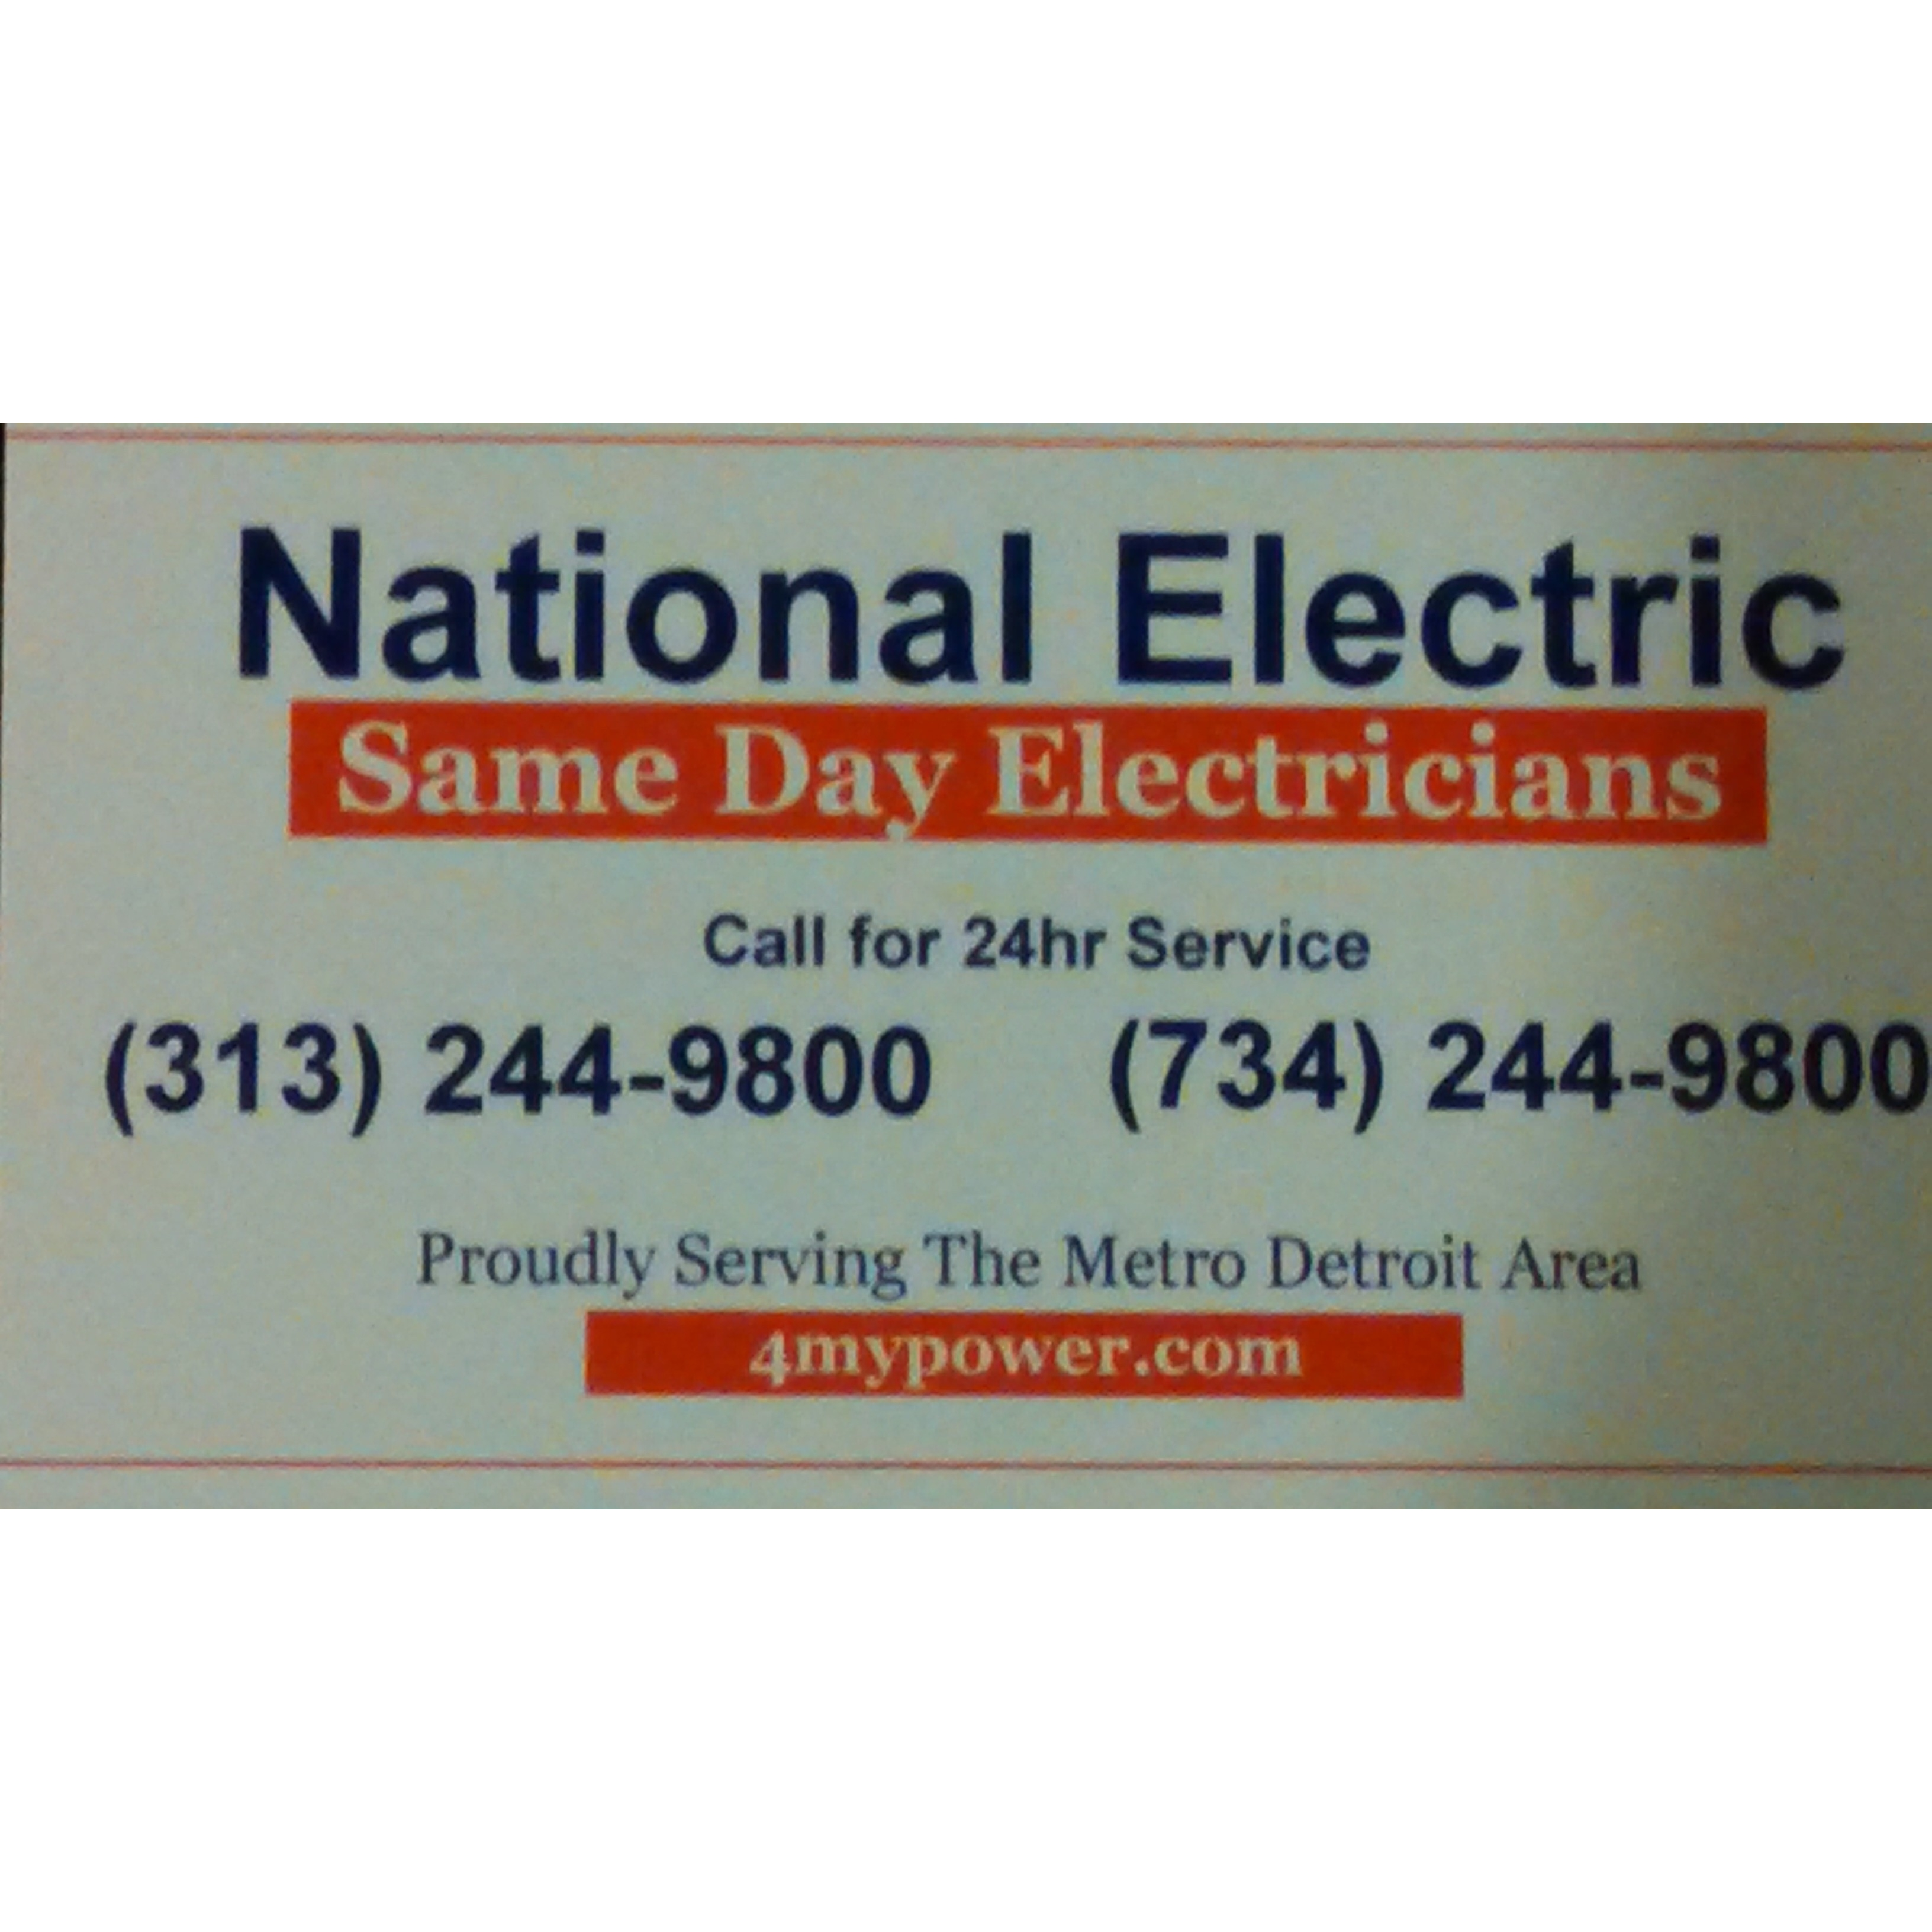 National Electric lc, (734) 244-9800 image 1